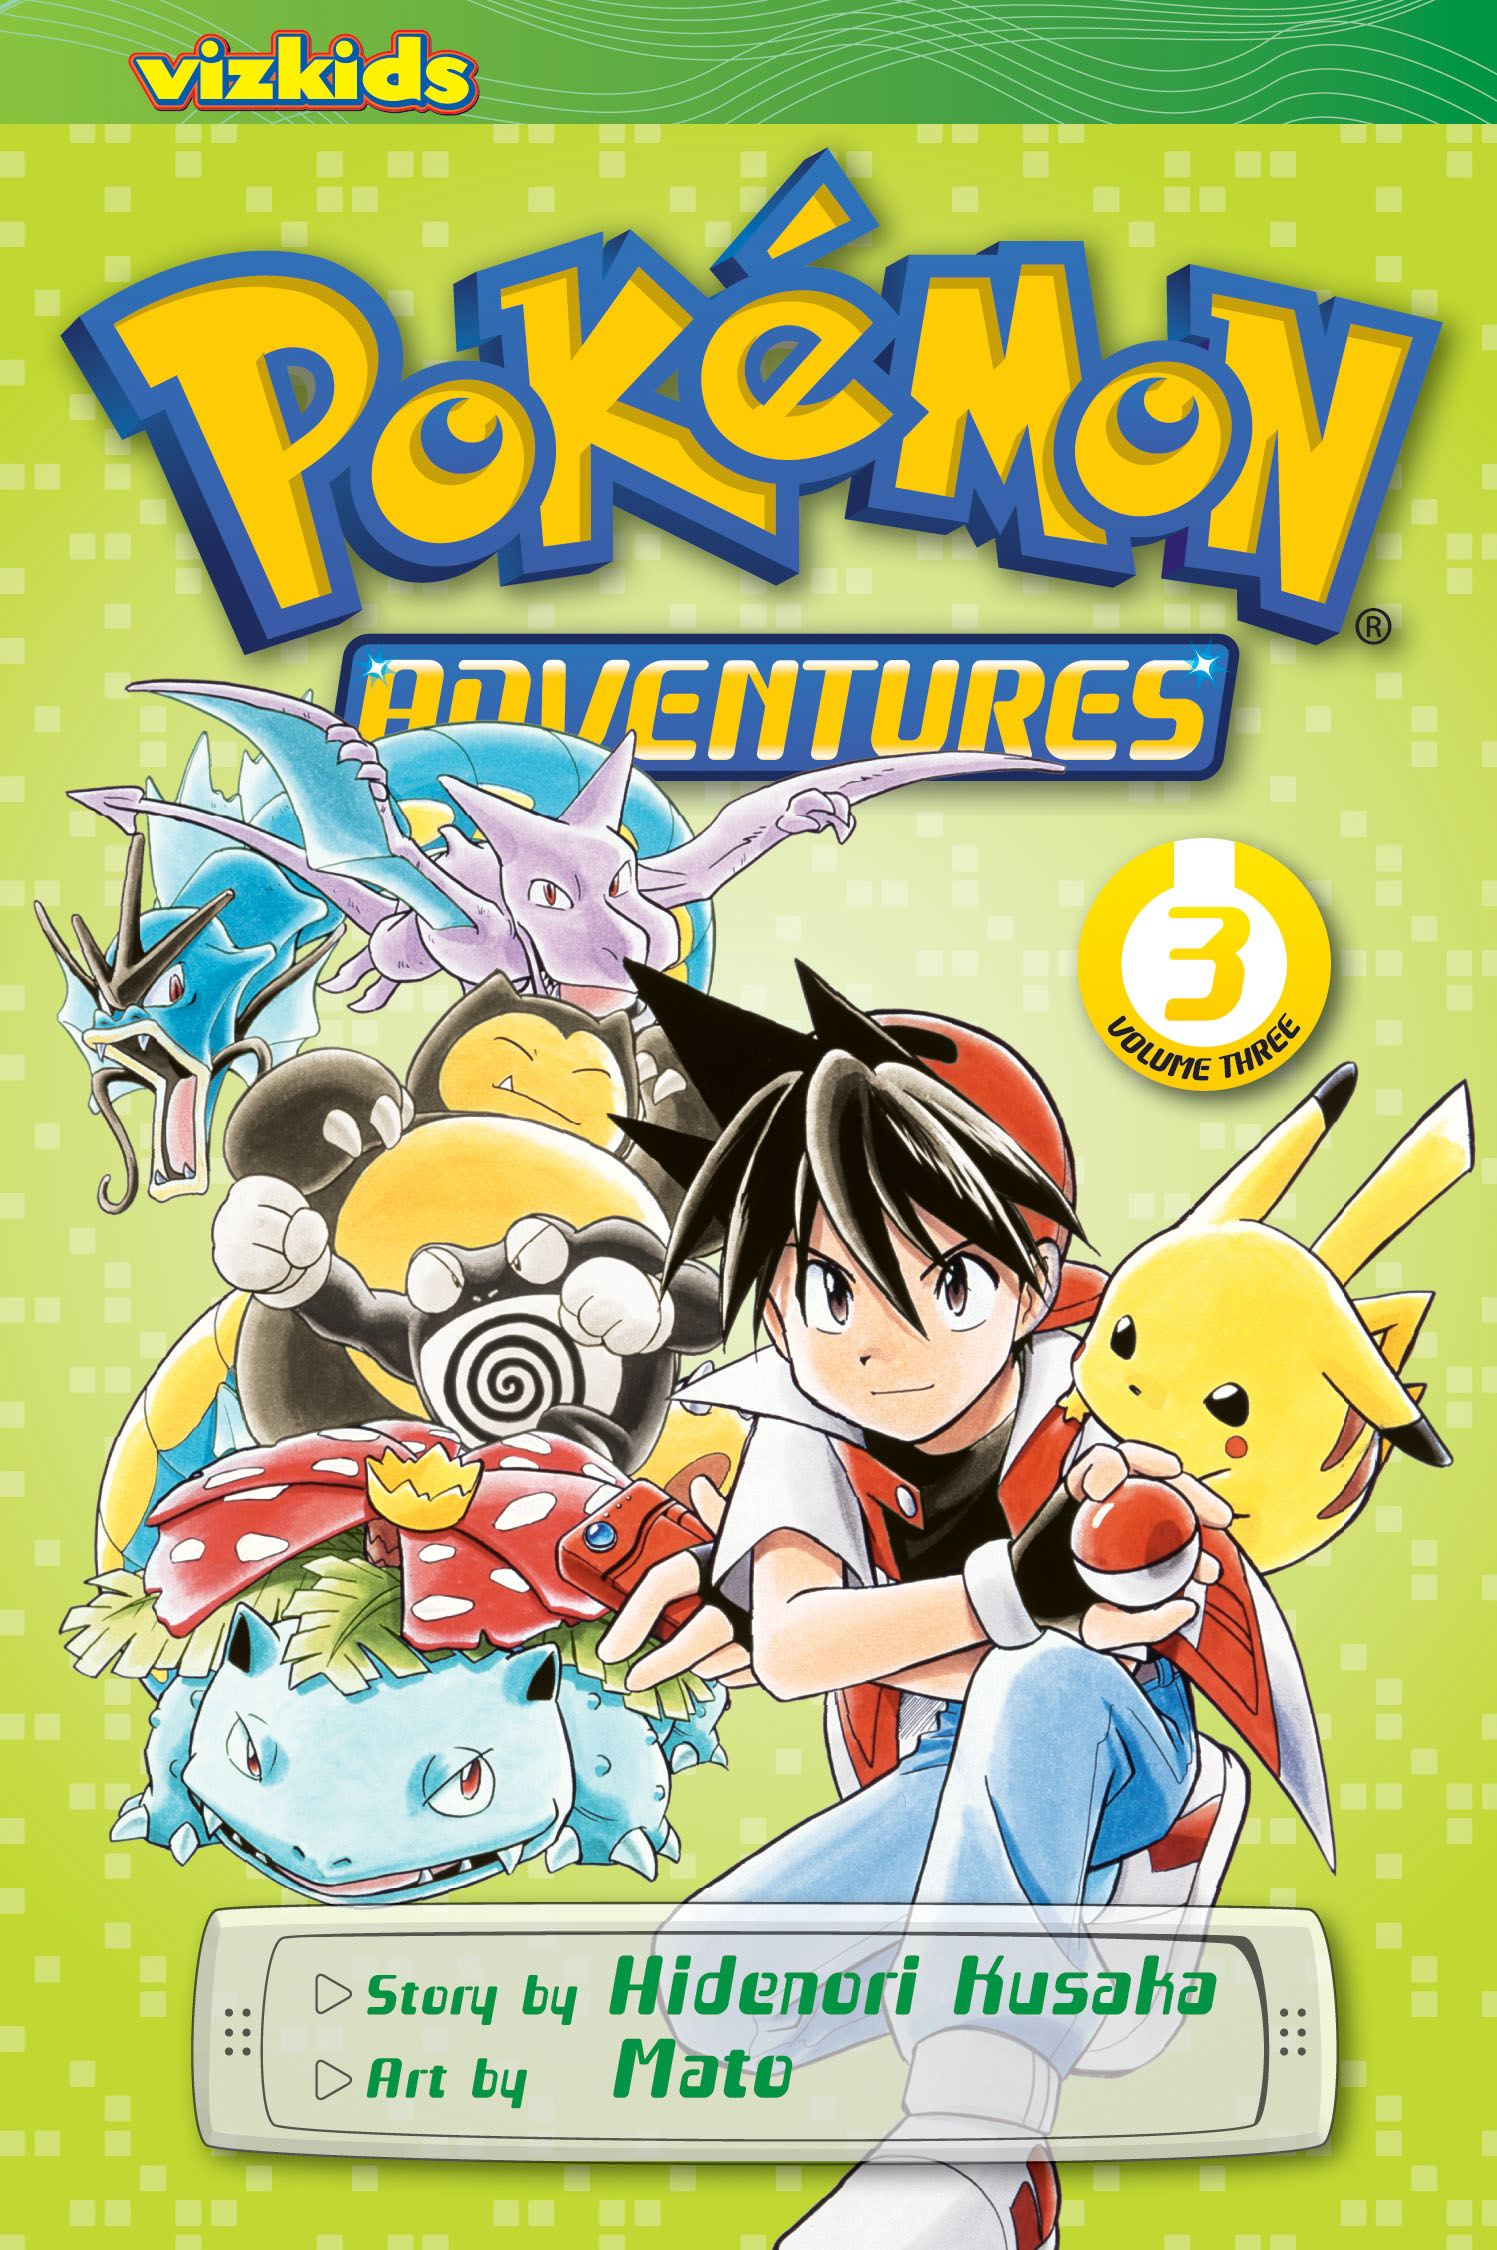 Pokemon-adventures-vol-3-2nd-edition-9781421530567_hr